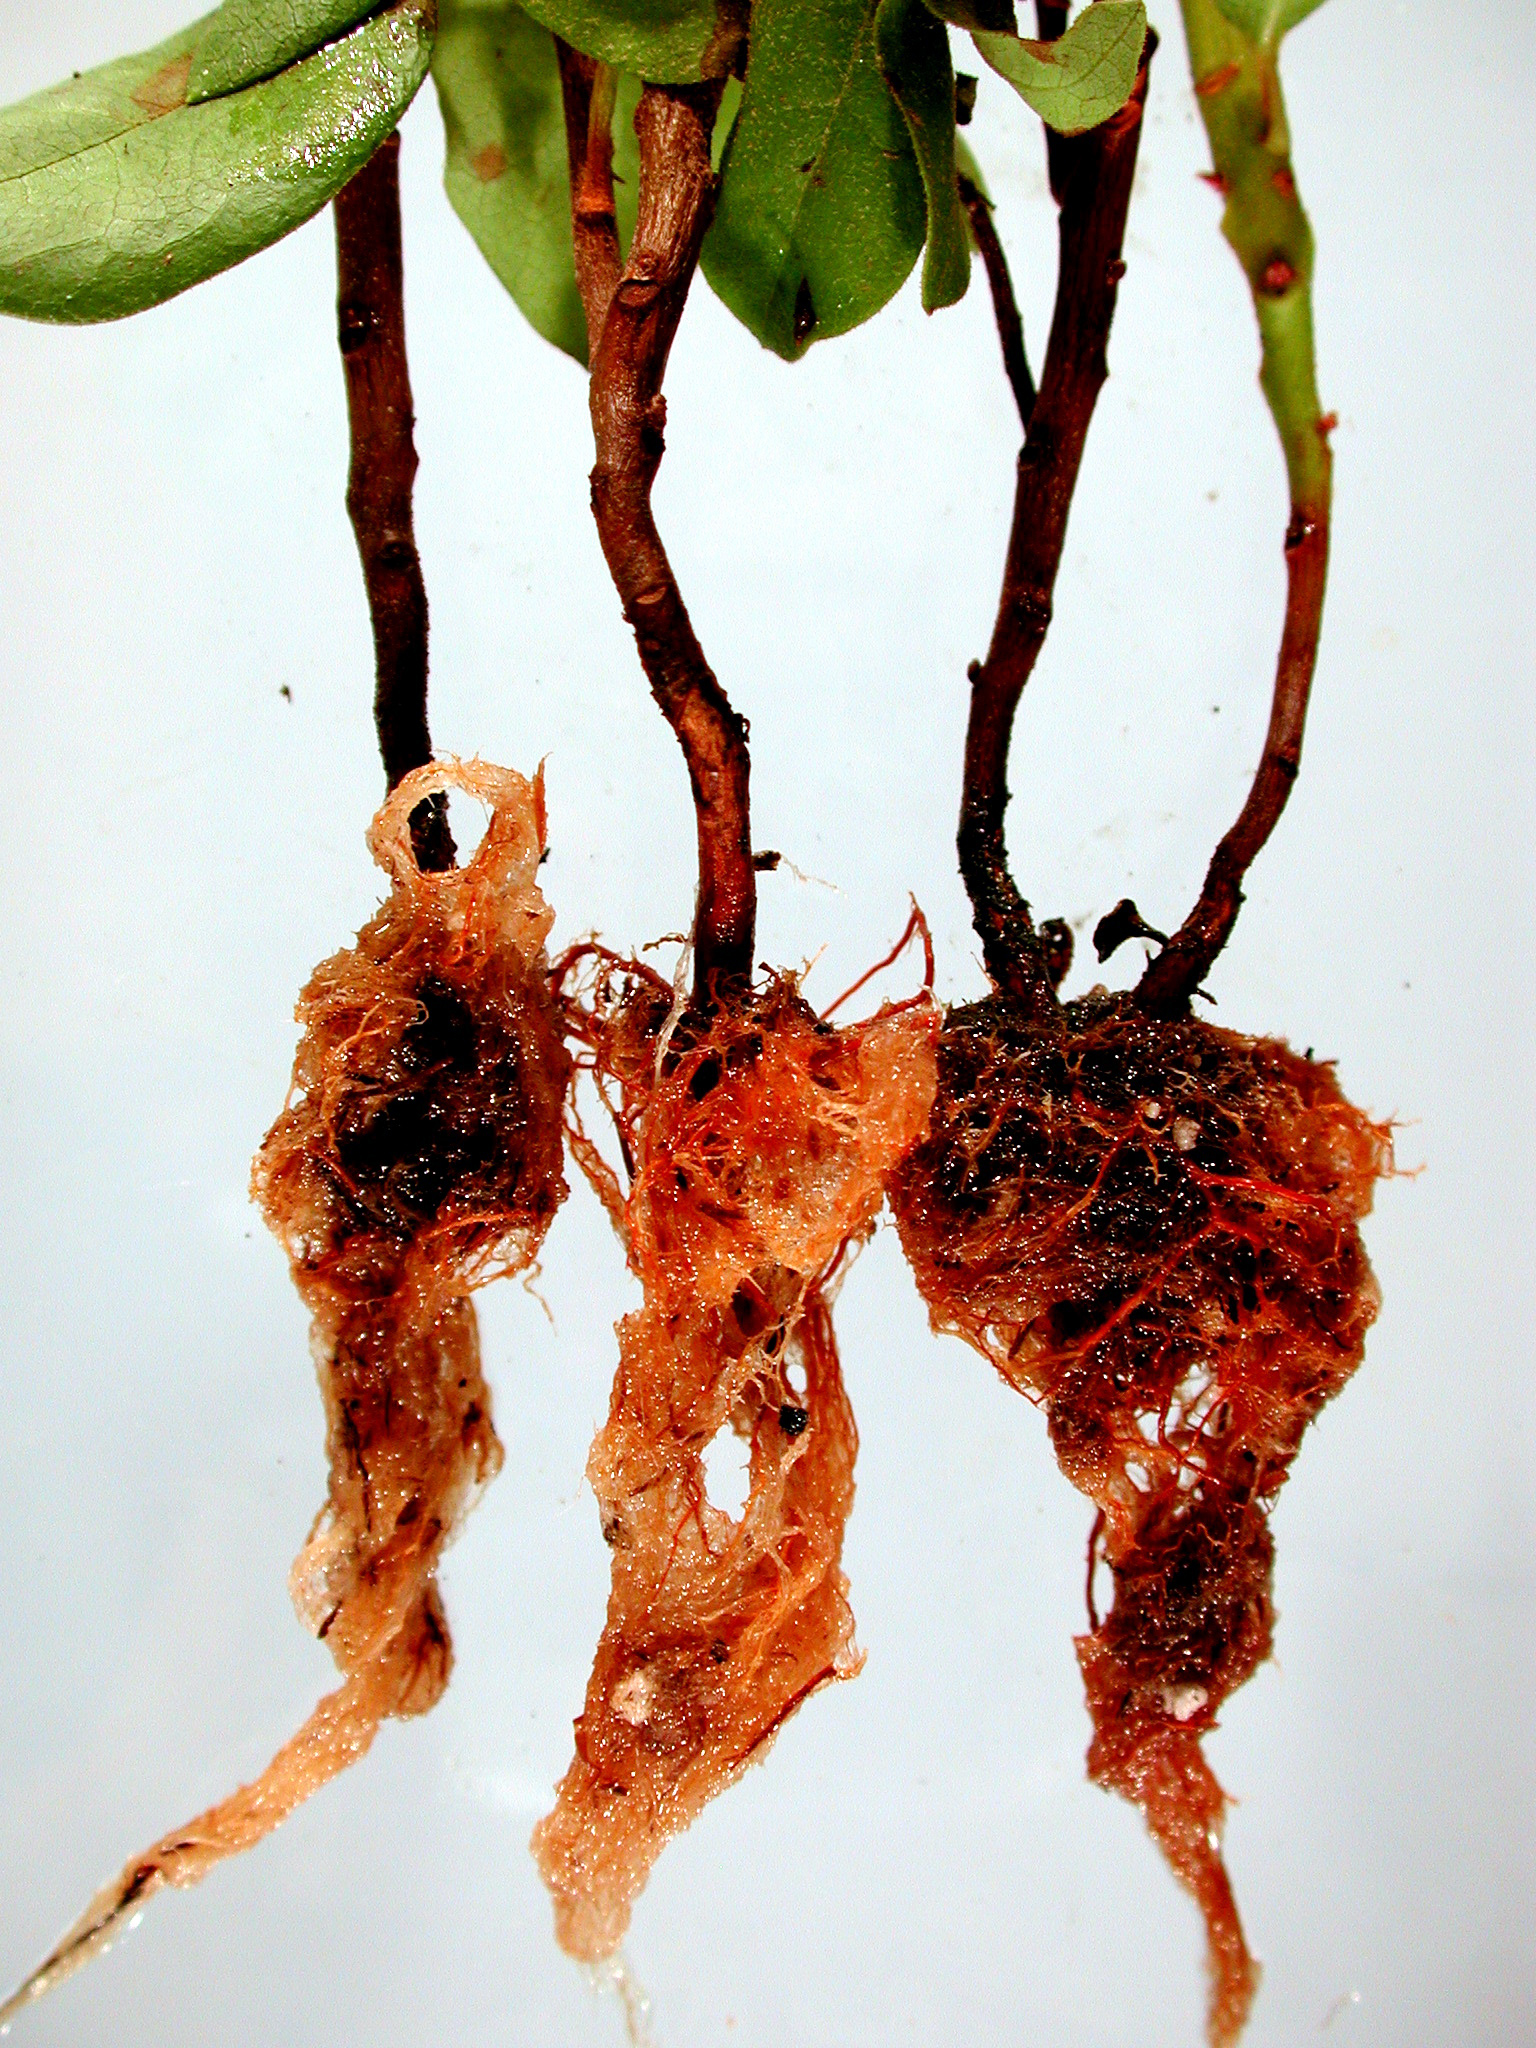 Rhododendron-Phytophthora Root Rot | Pacific Northwest ...